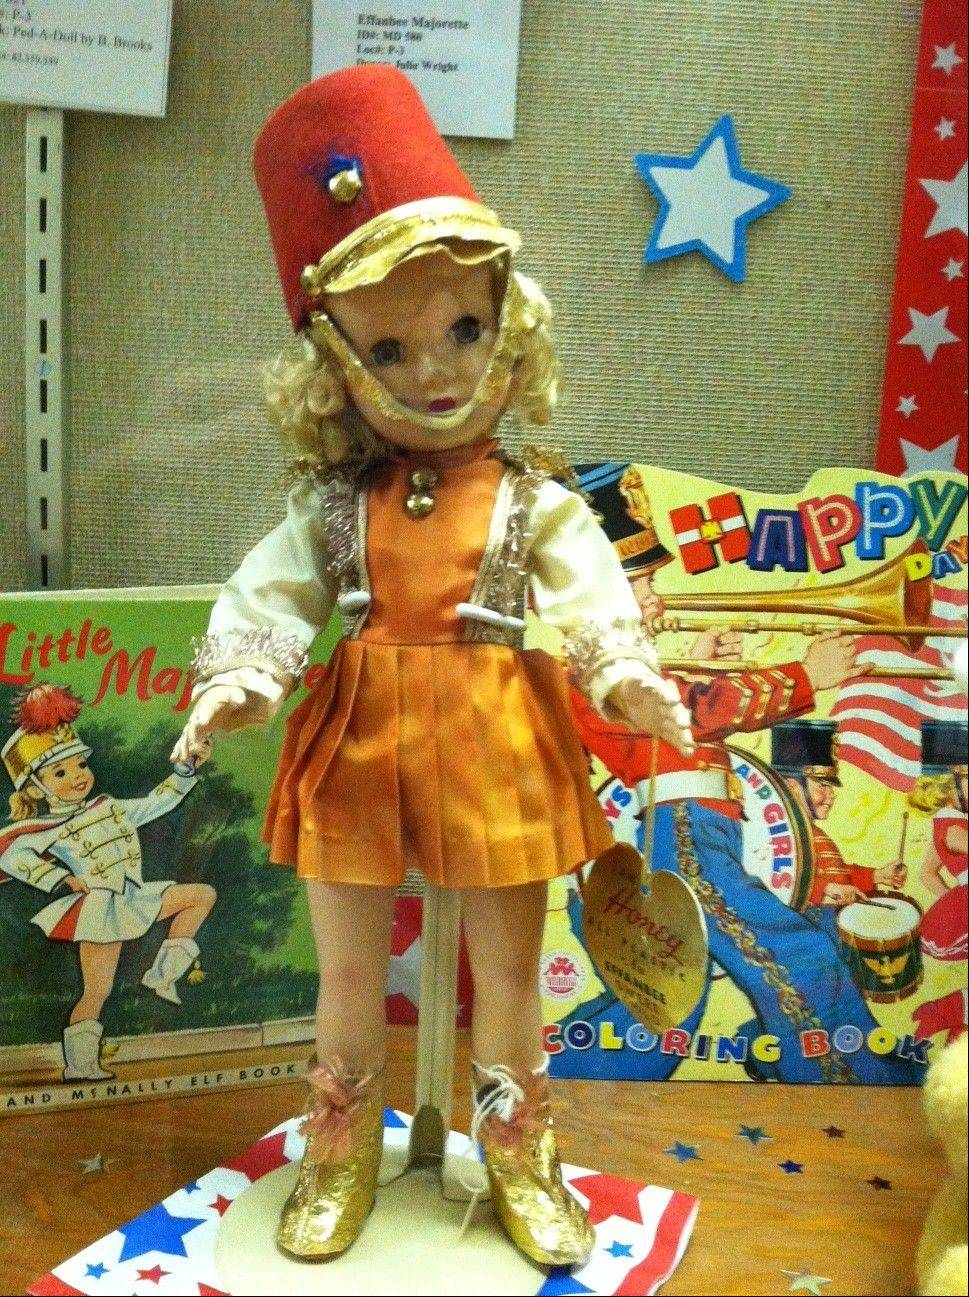 """Effanbee Majorette"" is one of the many dolls on display with a circus theme."